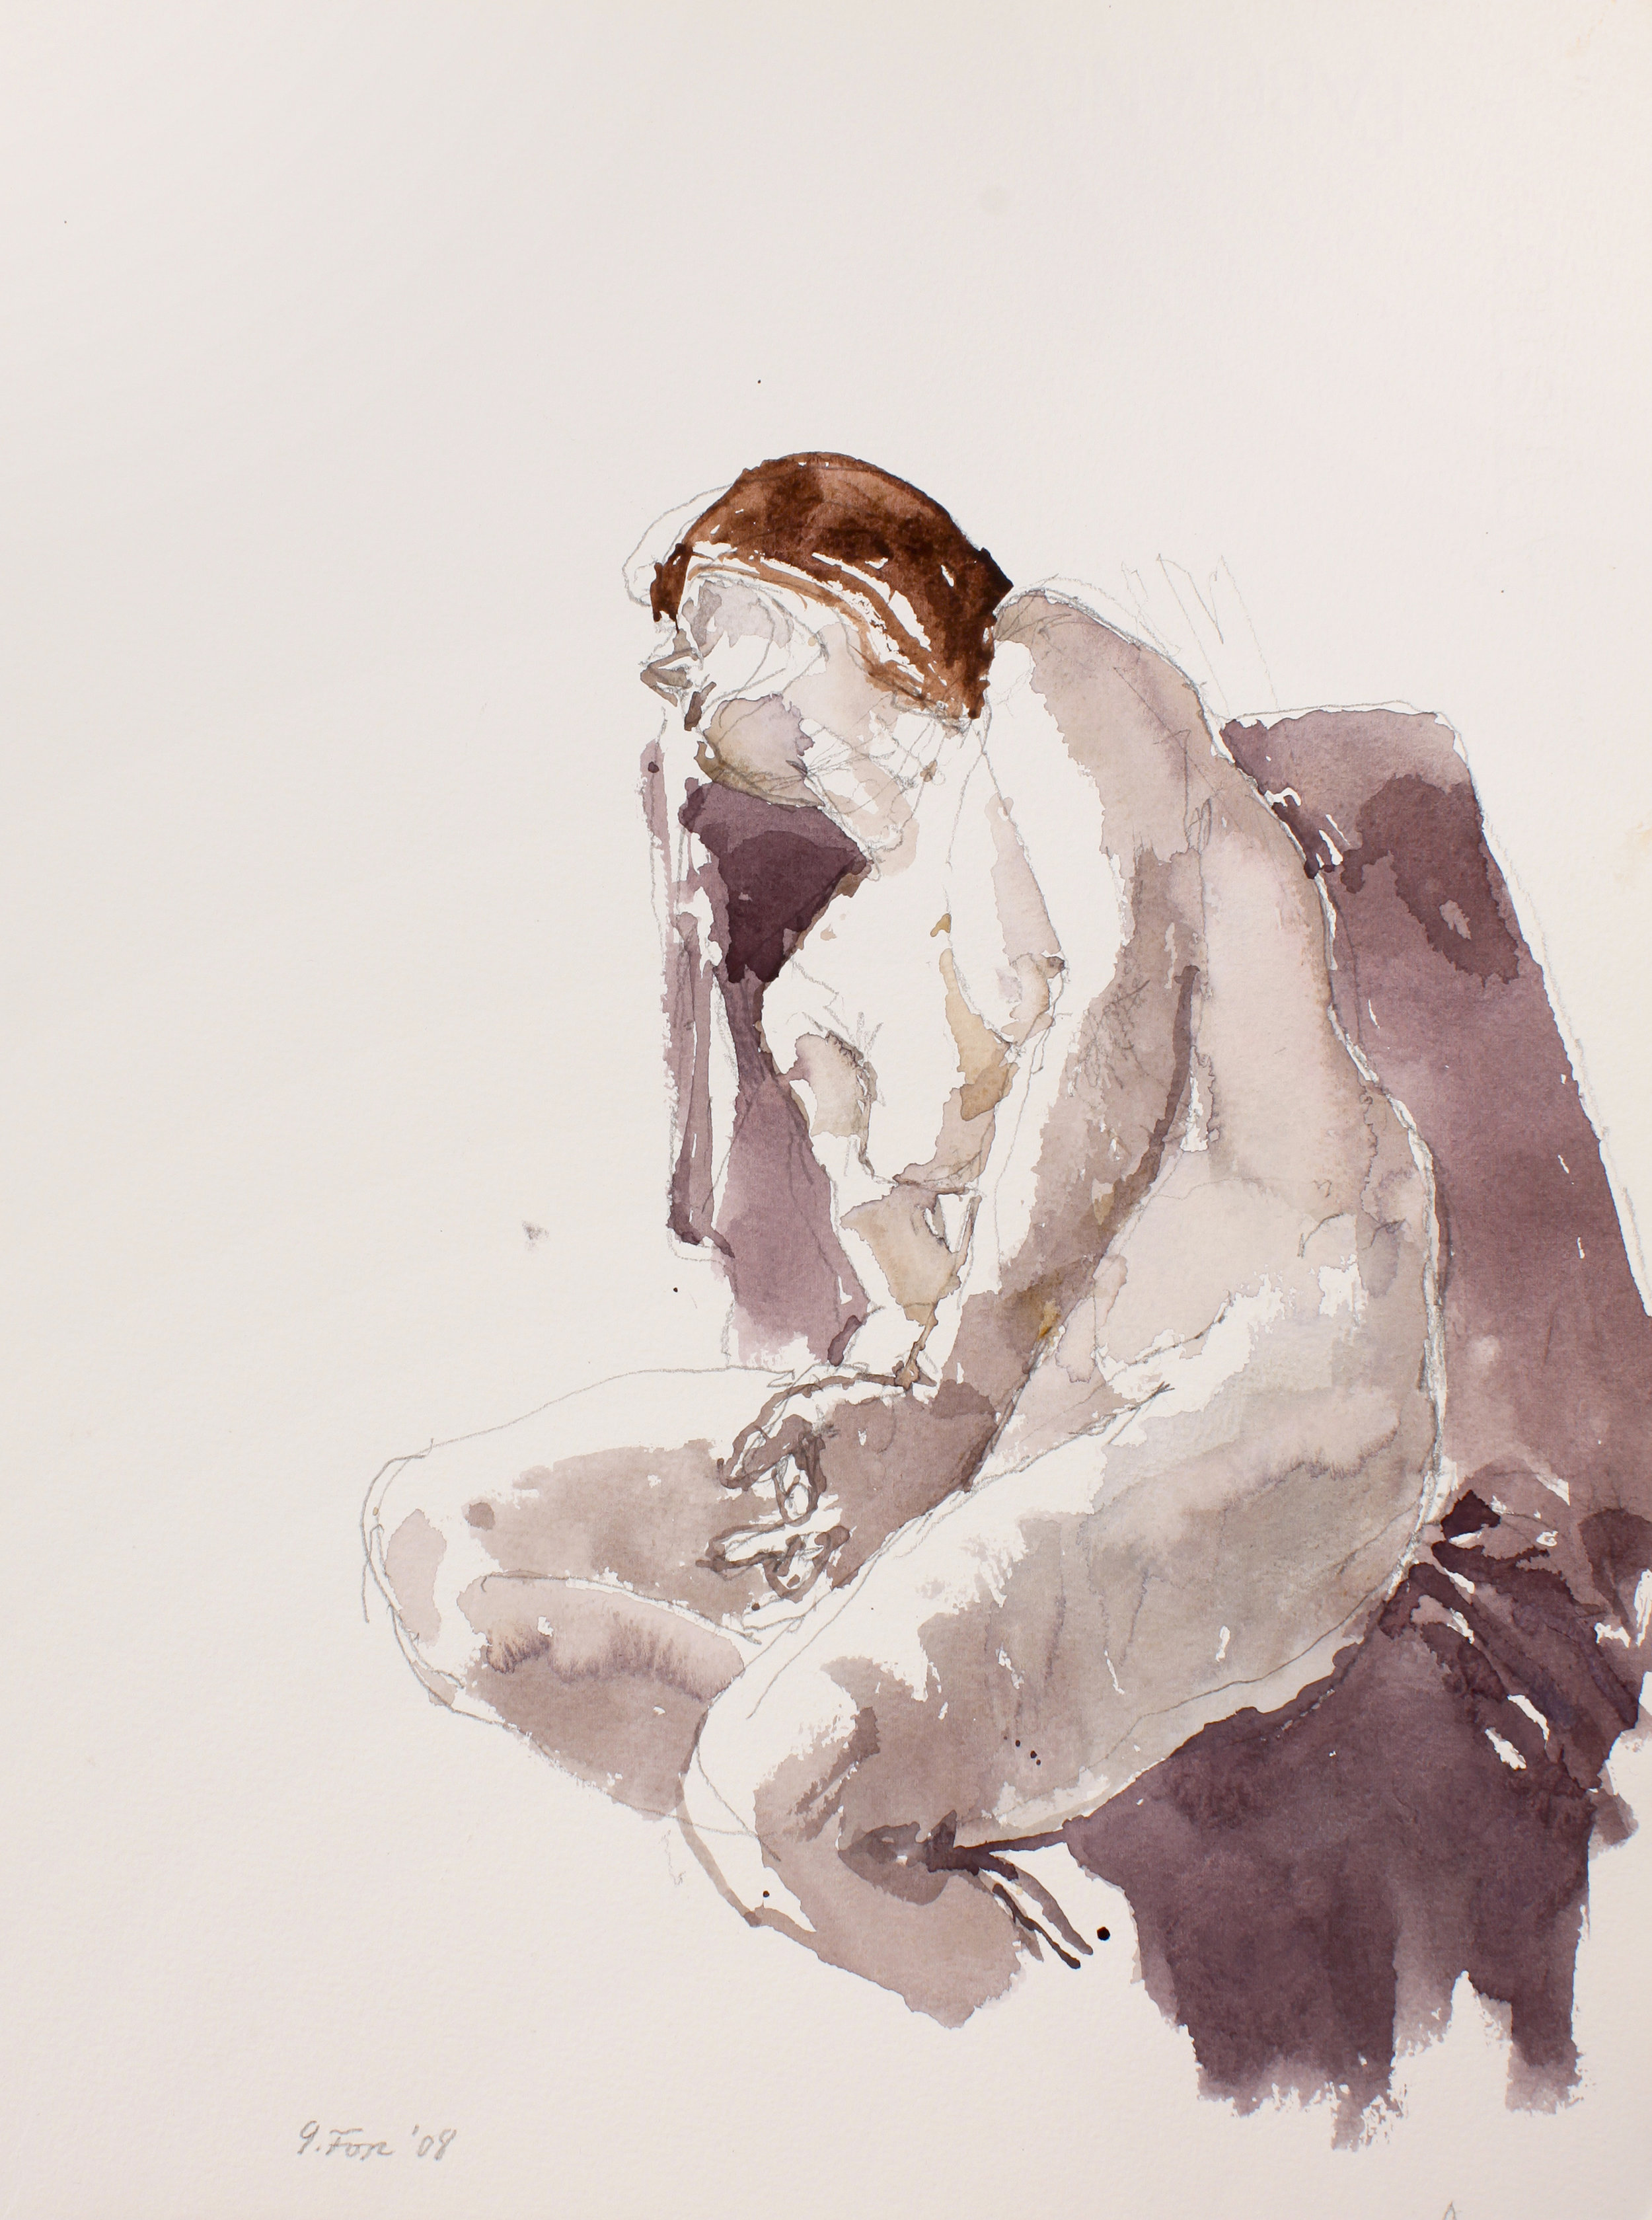 2008_Seated_Nude_with_Head_Reclining_on_Chair_Back_watercolour_and_pencil_on_paper_15x11in_WPF565.jpg